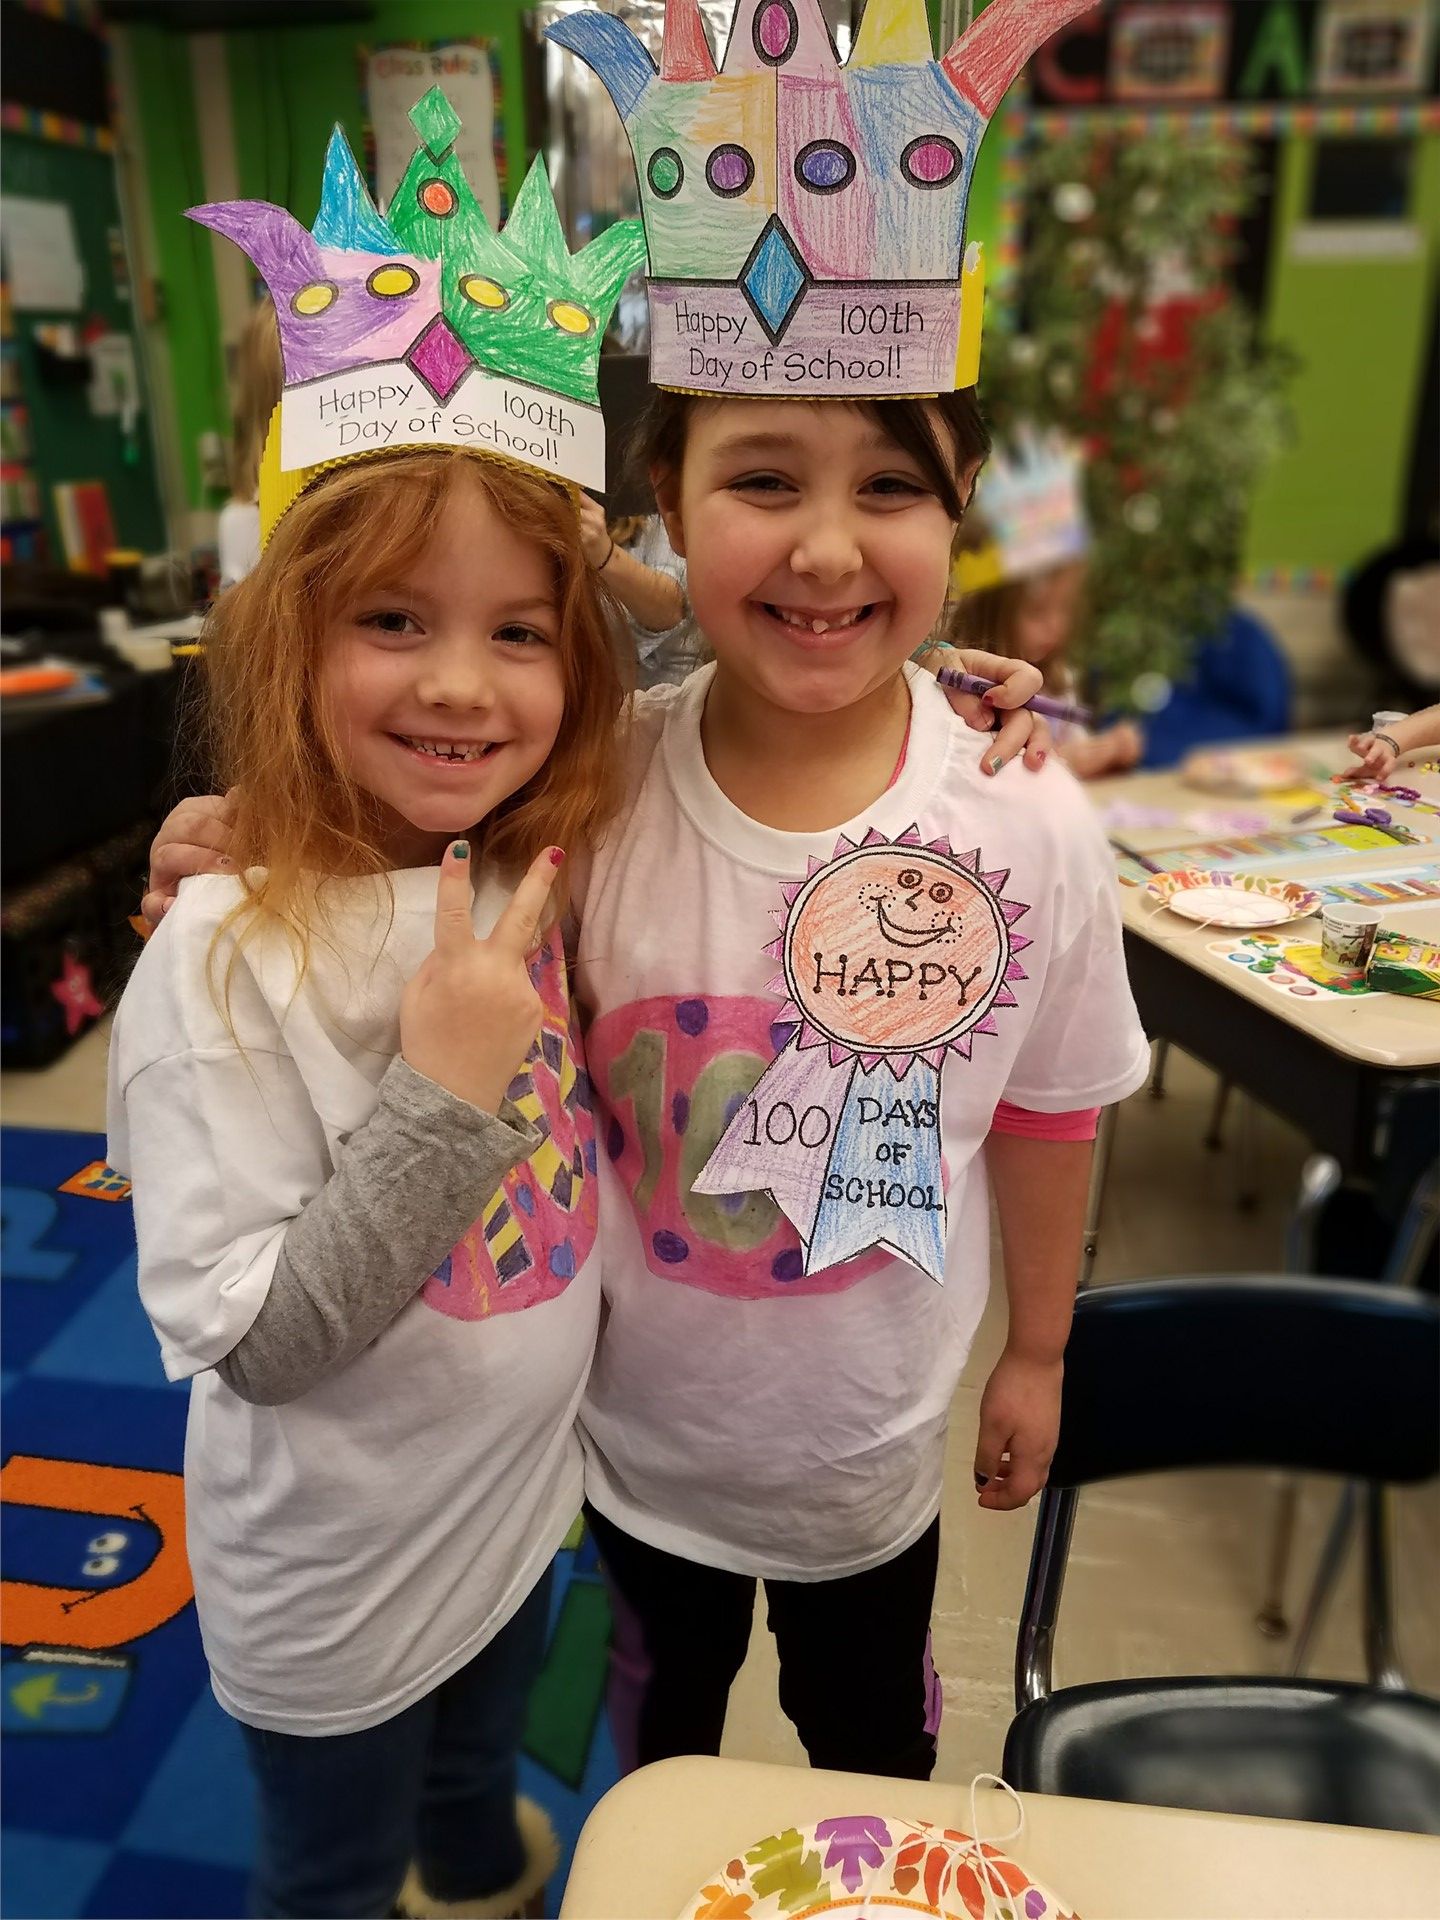 1C Celebrates The 100th Day of School